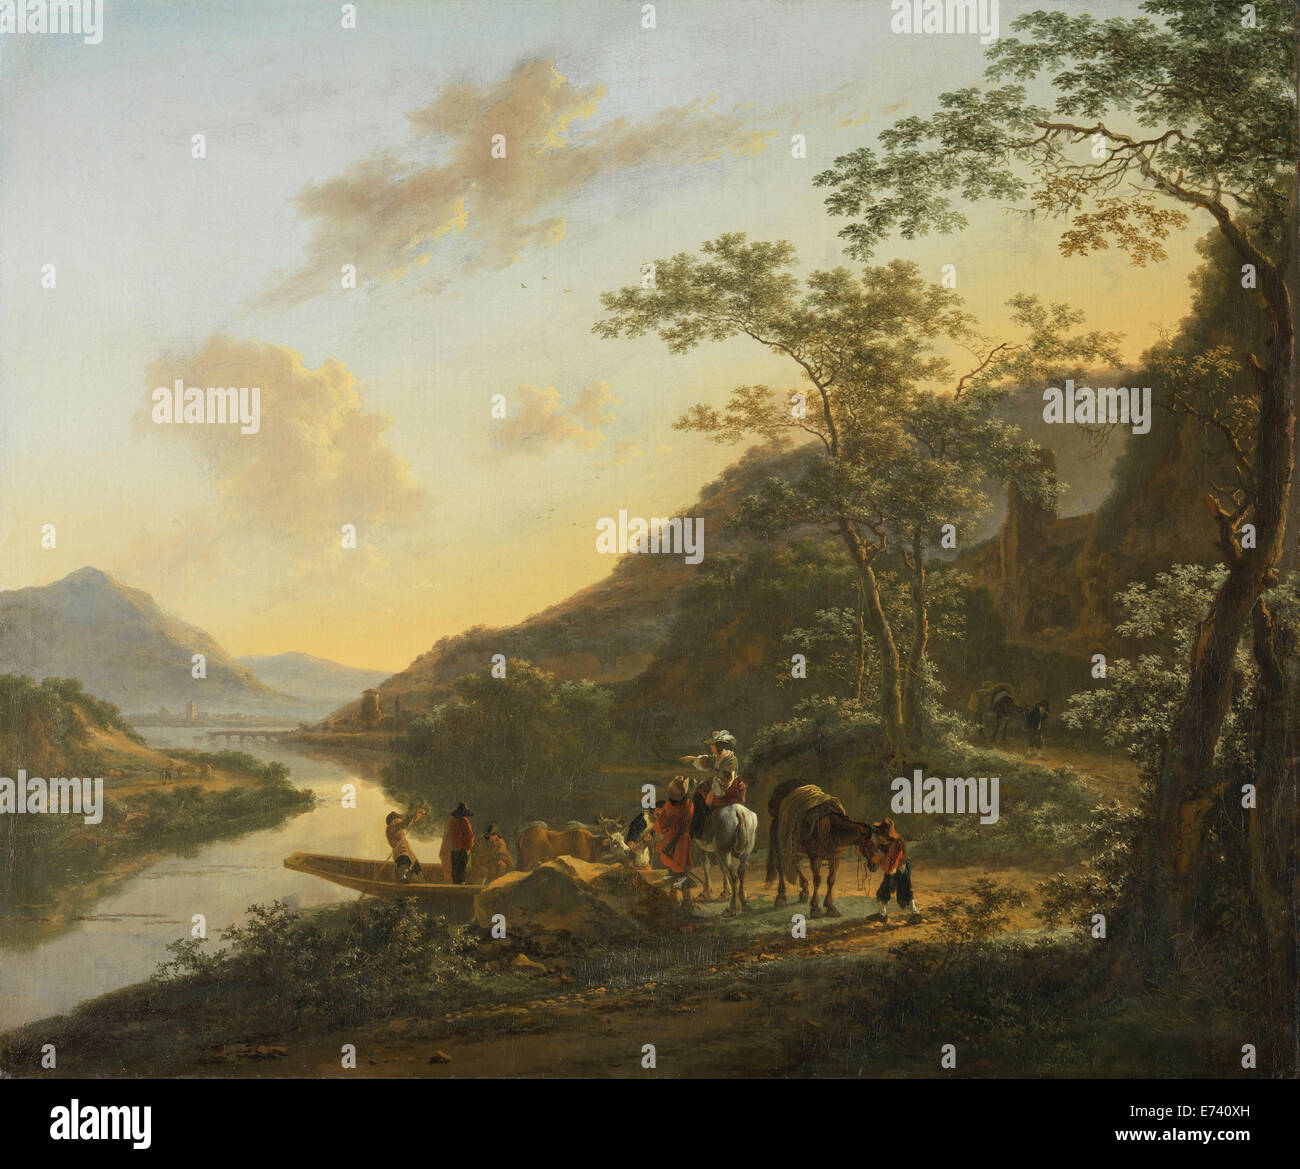 Italian Landscape with Ferry - by Jan Both, 1652 - Stock Image